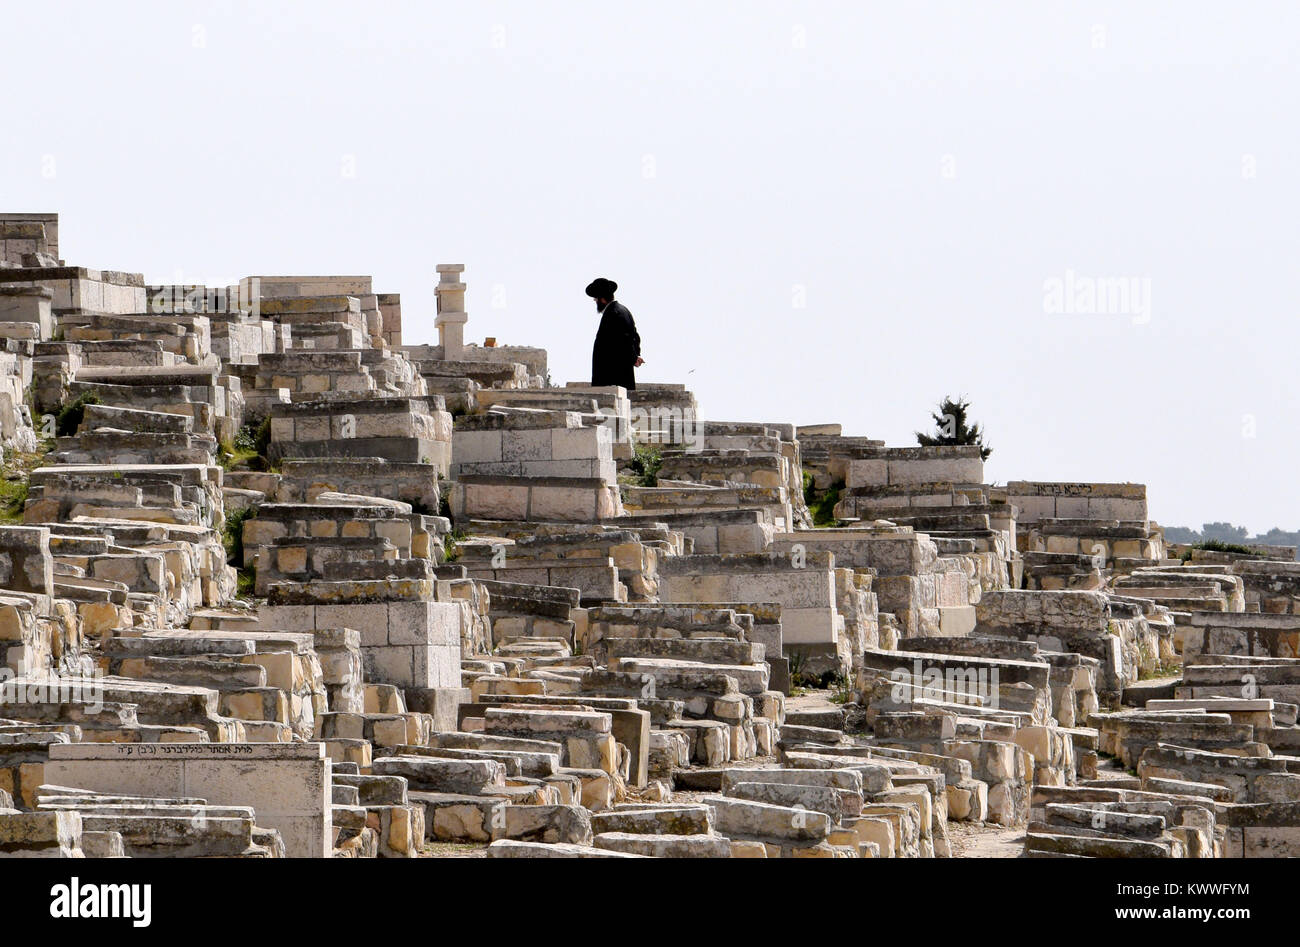 Orthodox jew on the Jewish graveyard at the Mount of Olives, Jerusalem - Stock Image